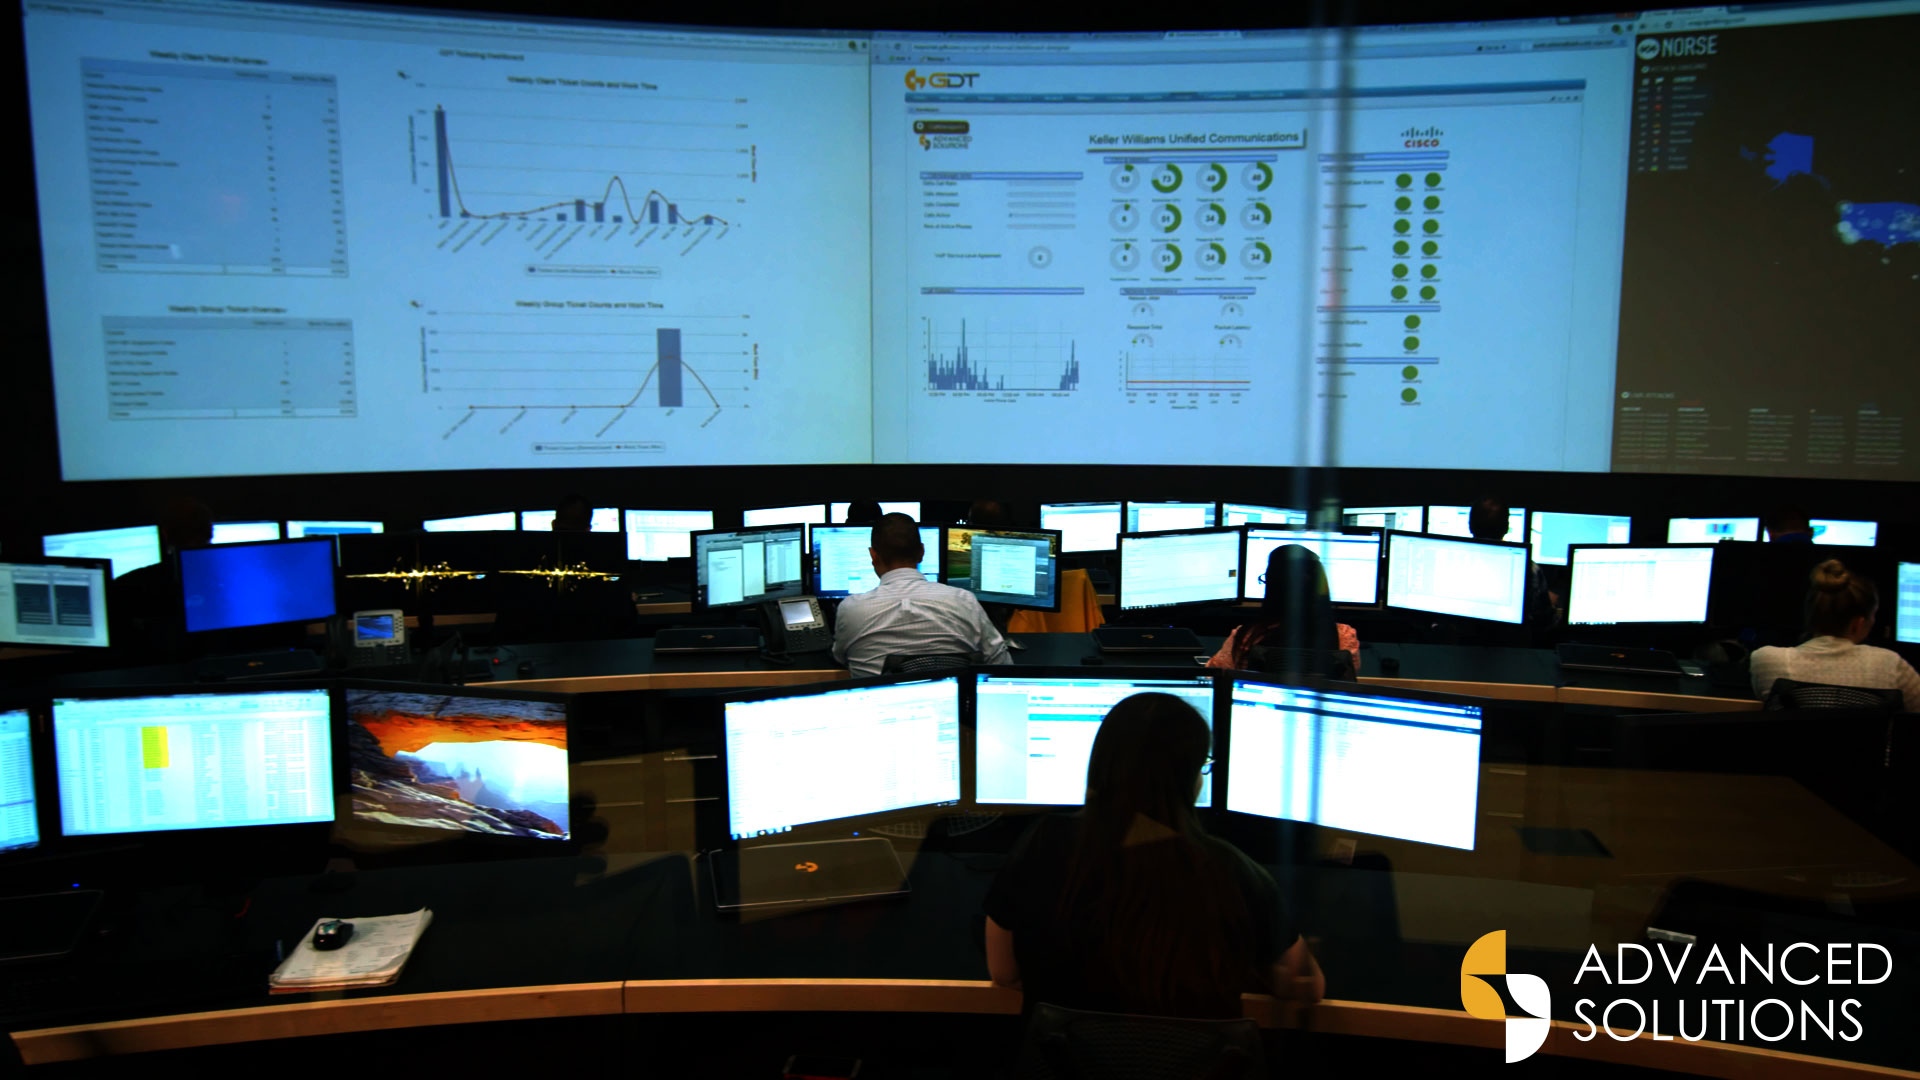 Gdt Advanced Solutions Expands Noc Facility Capabilities